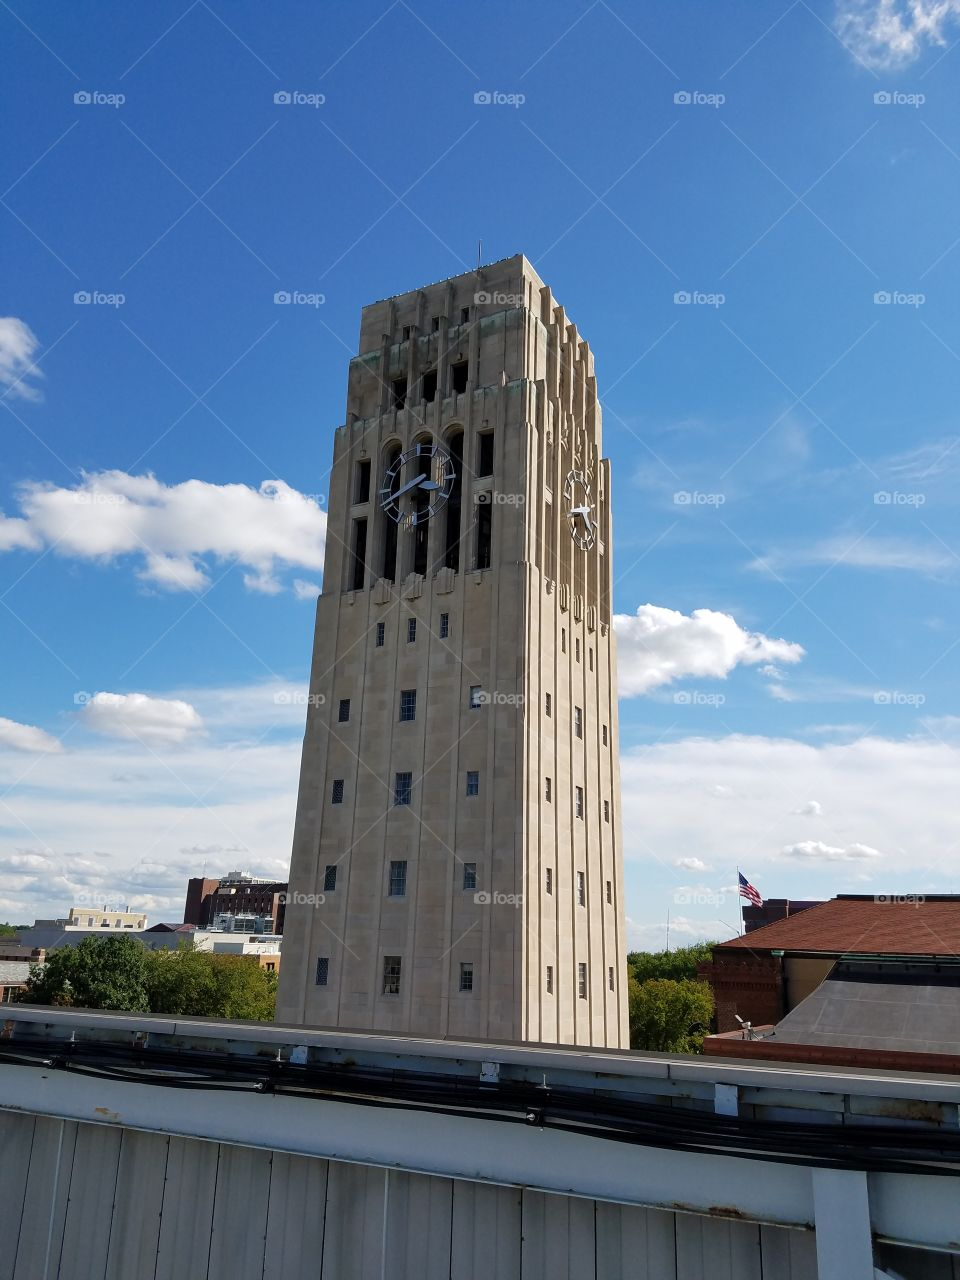 Burton Tower (University of Michigan)